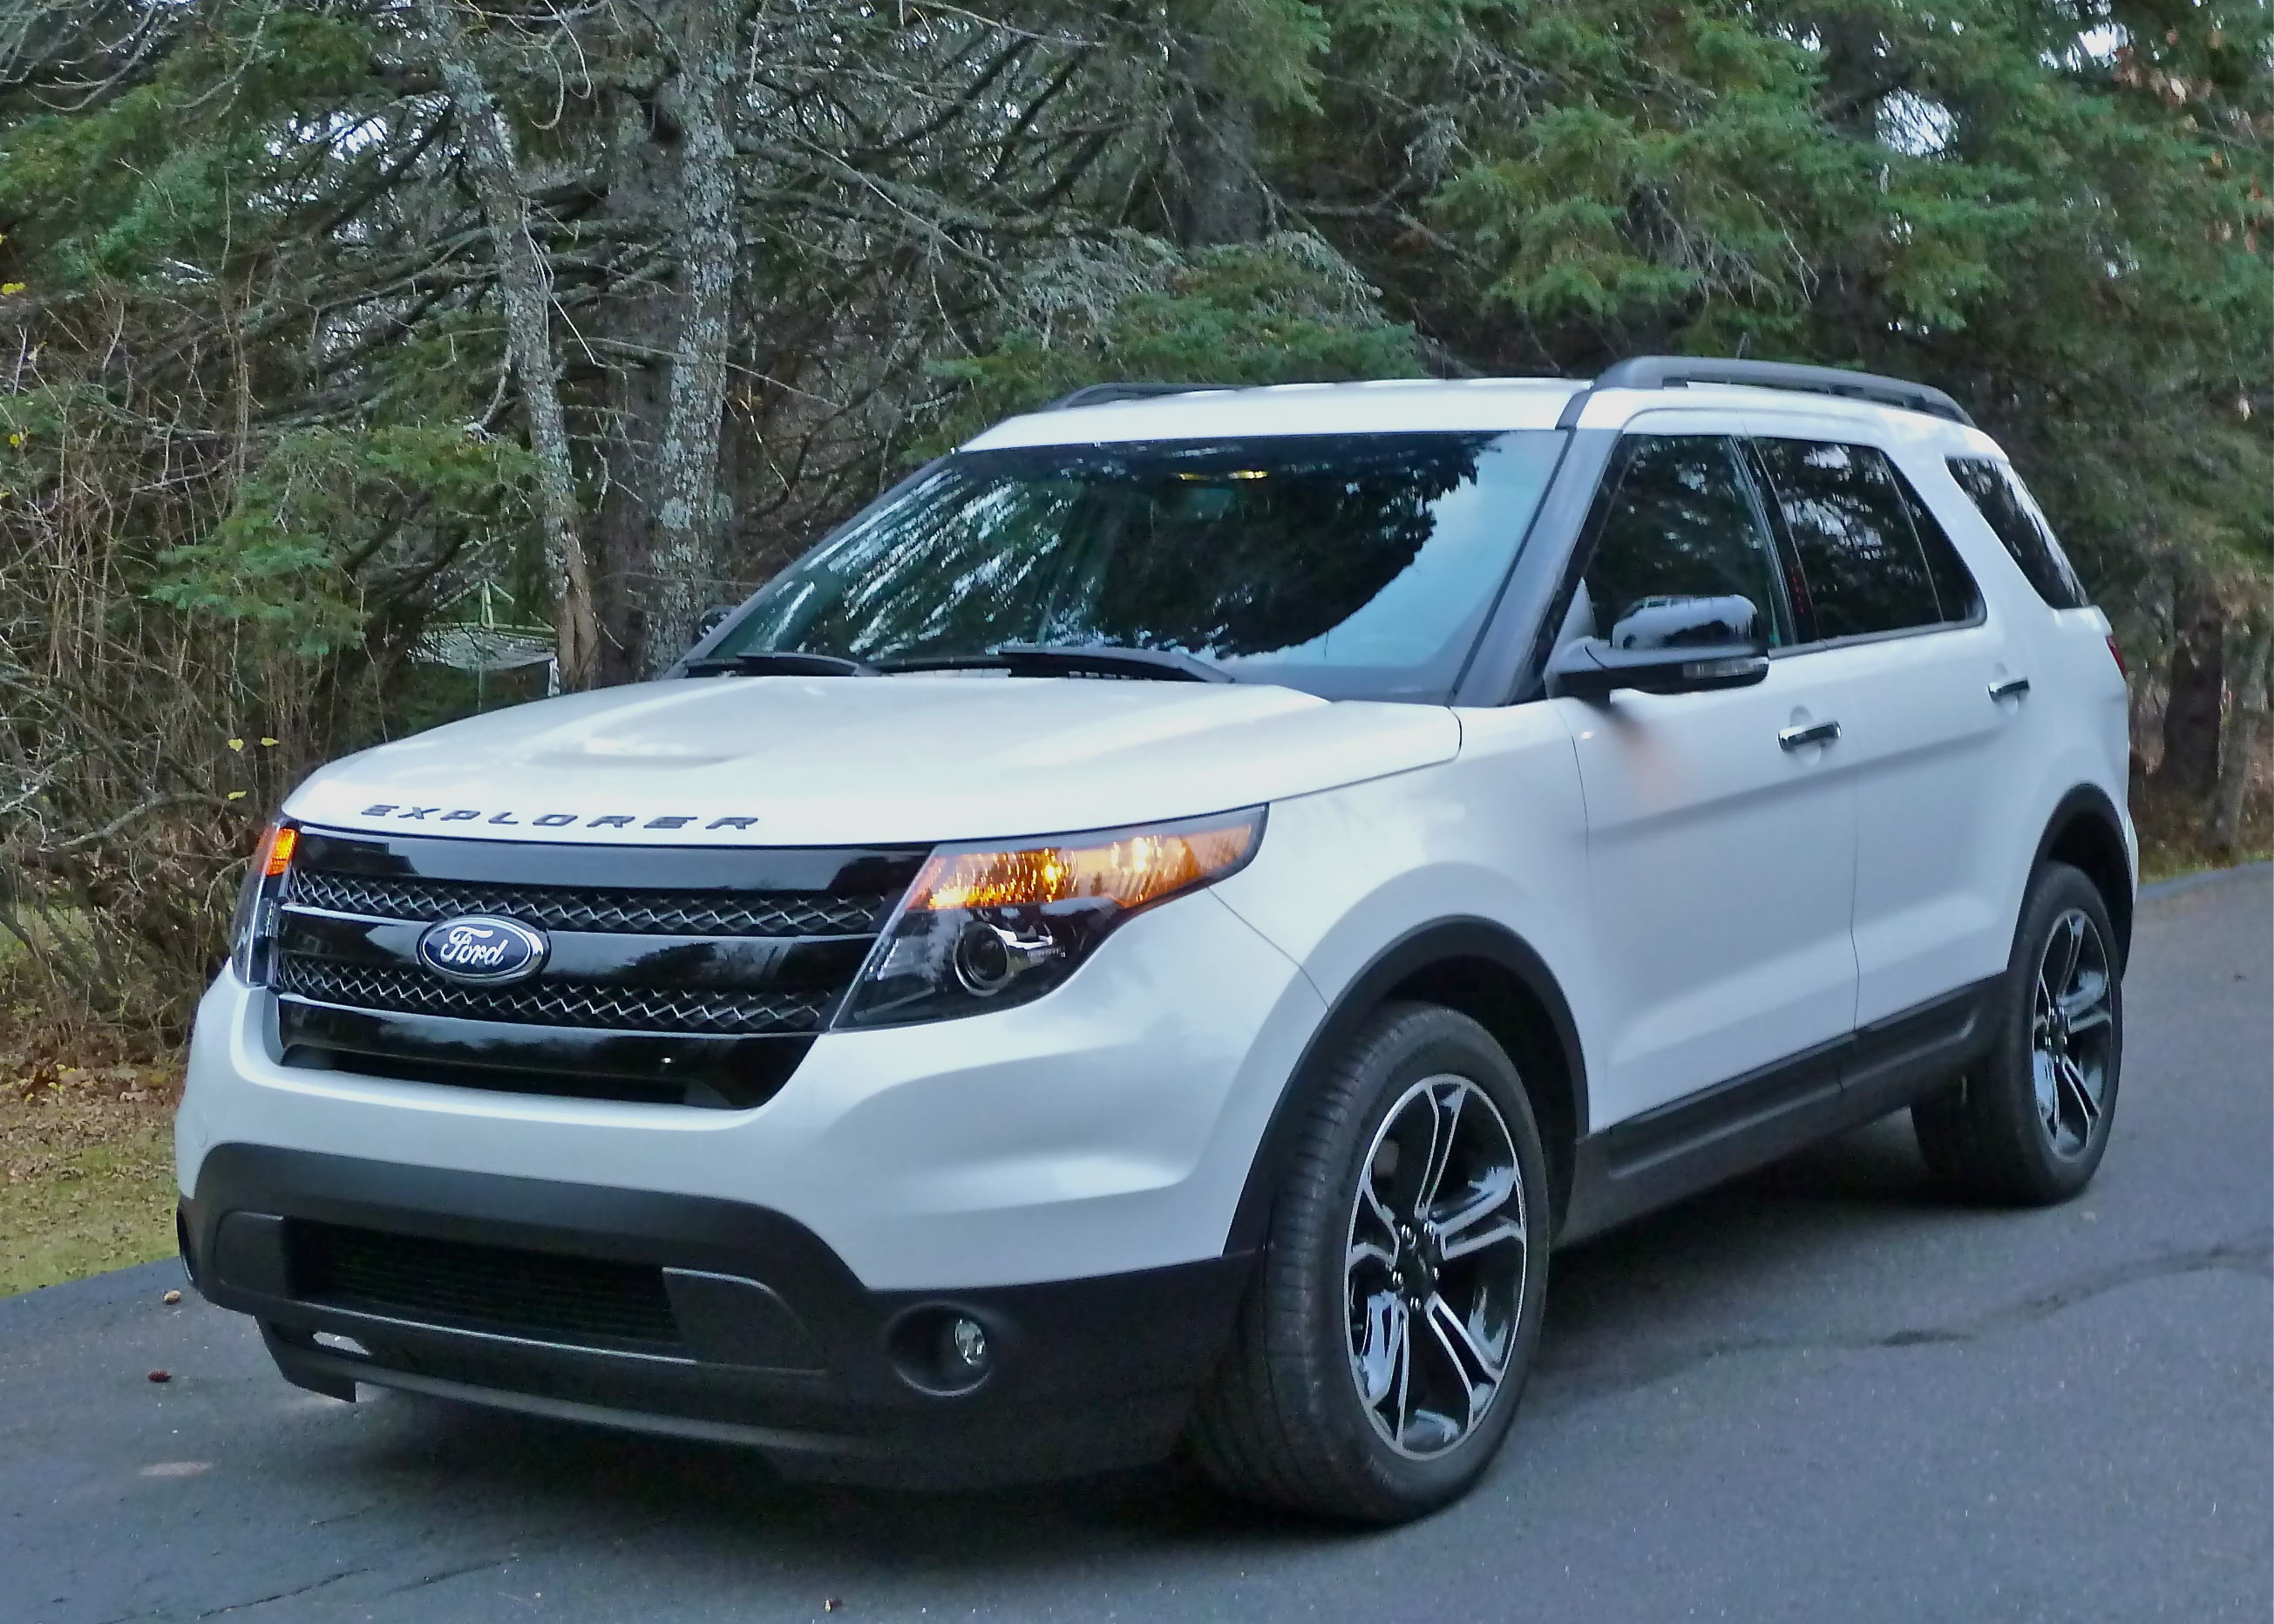 2013 ford explorer towing guide